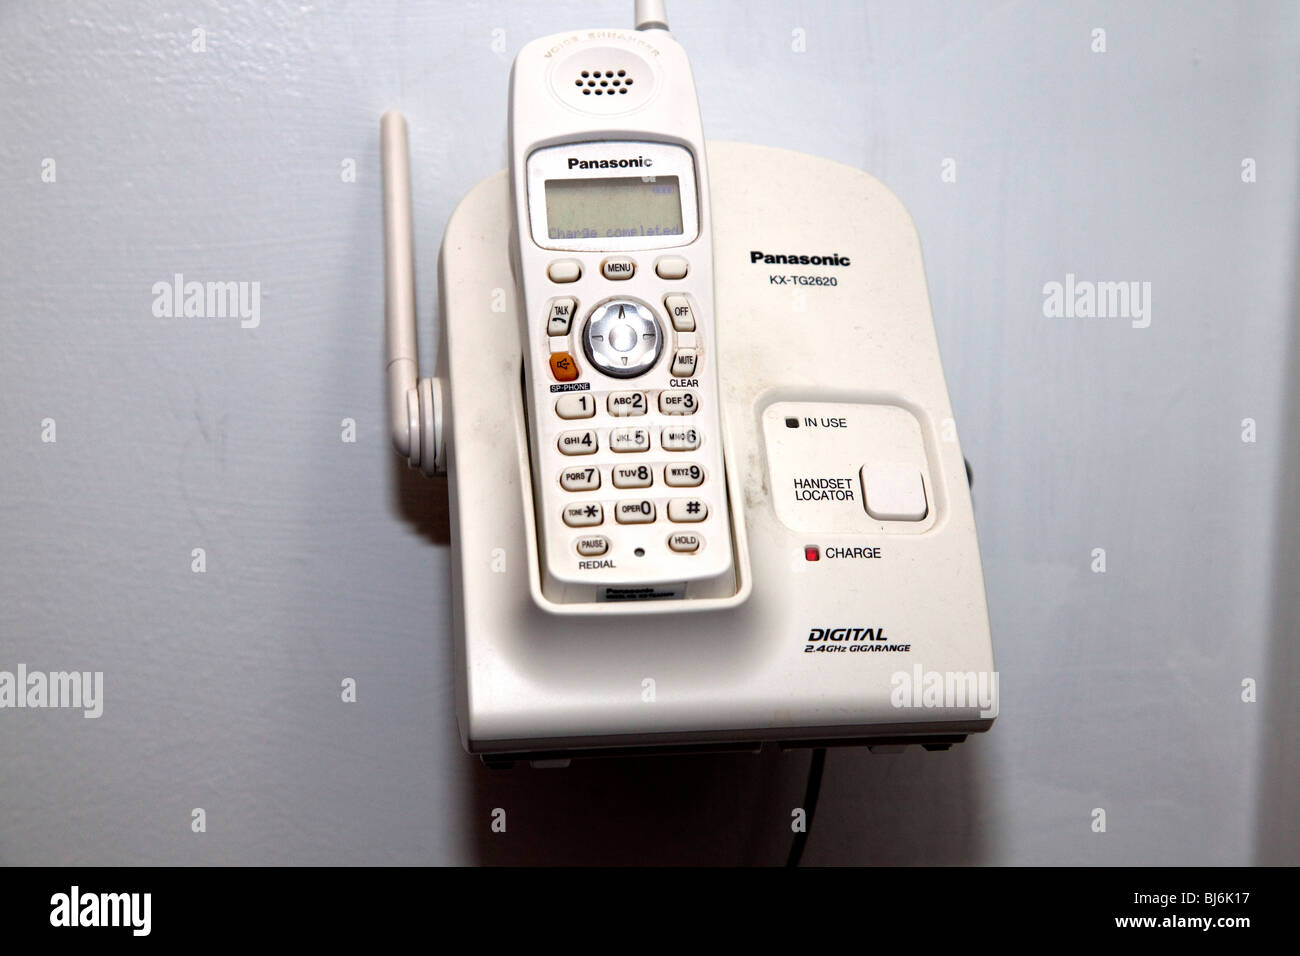 Panasonic digital telephone mounted on wall. St Paul Minnesota USA - Stock Image